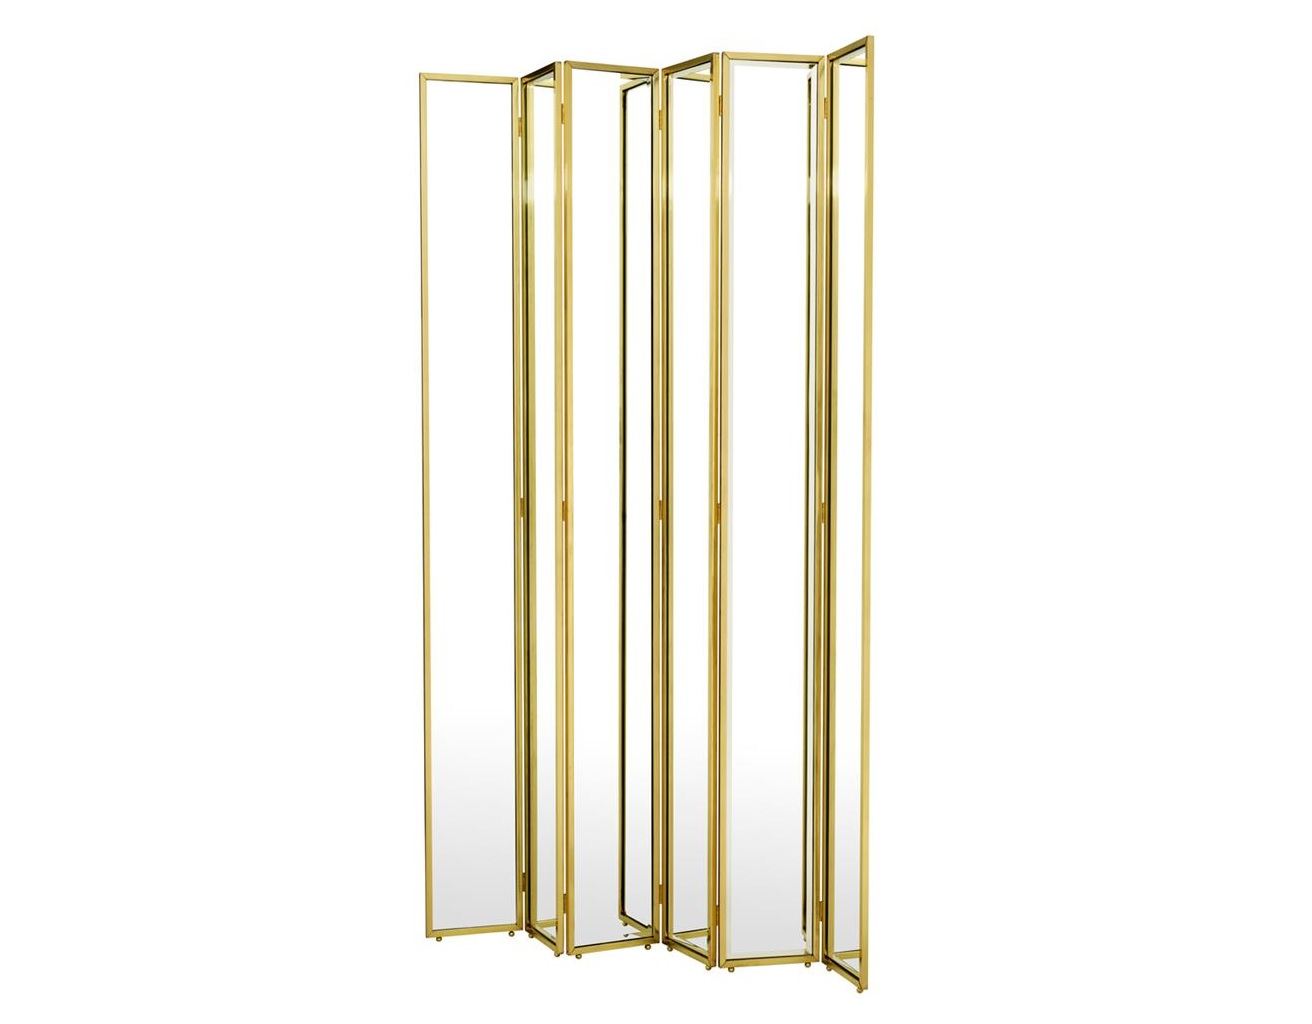 Ширма Folding Screen Mademoiselle GabrielleШирмы<br><br><br>Material: Металл<br>Ширина см: 150.0<br>Высота см: 220.0